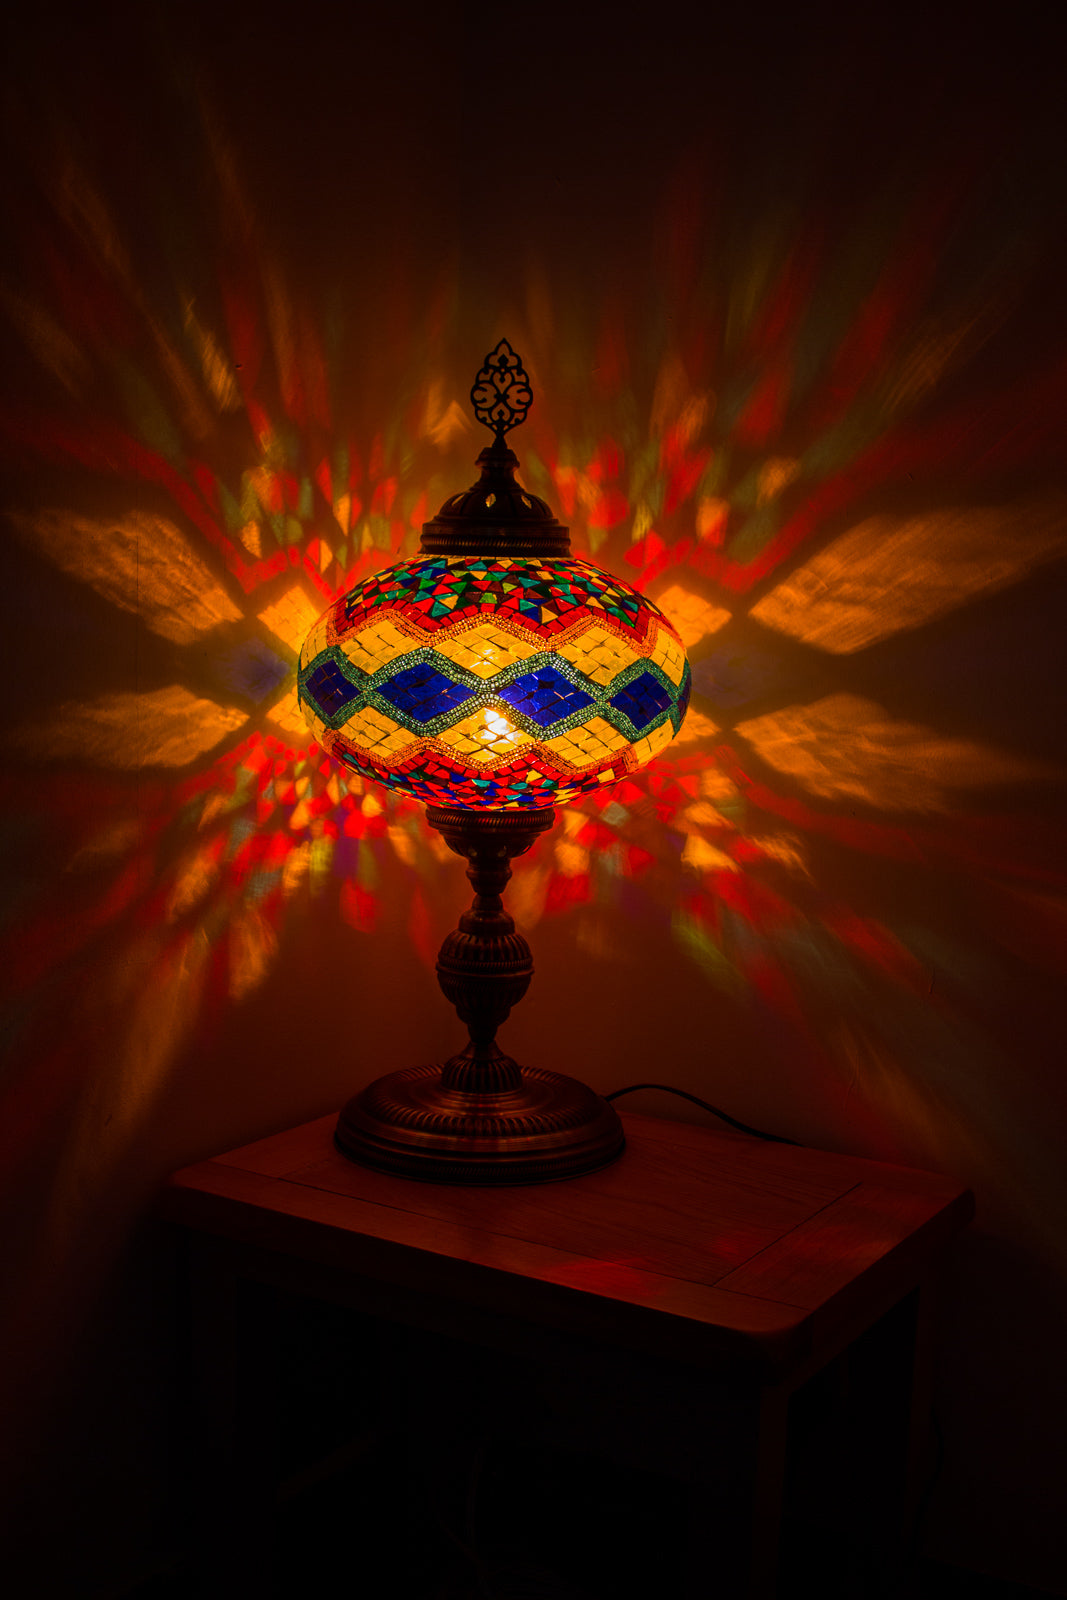 Hand Made Extra Large Mosaic Table Lamp Size 6 in Flame Rug Design